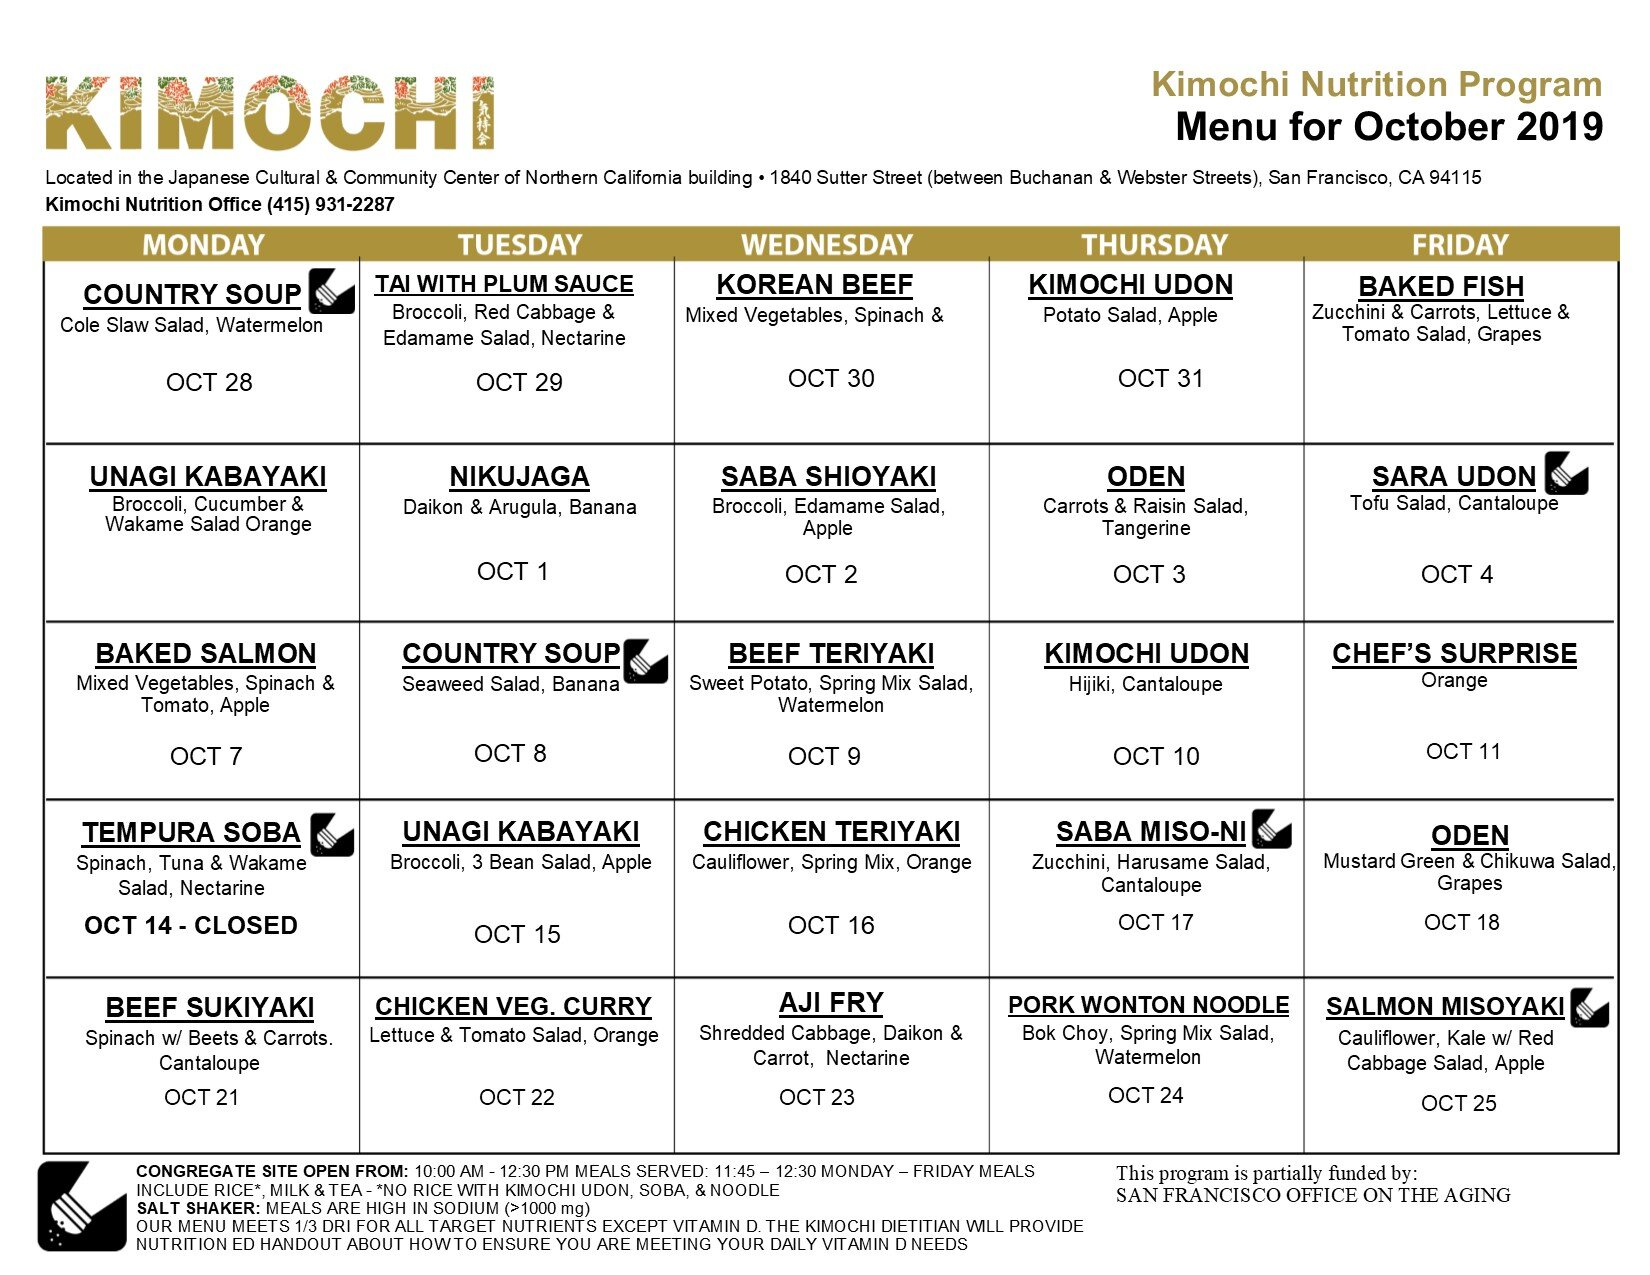 Kimochi-CommunityDining-Menu-October.jpg